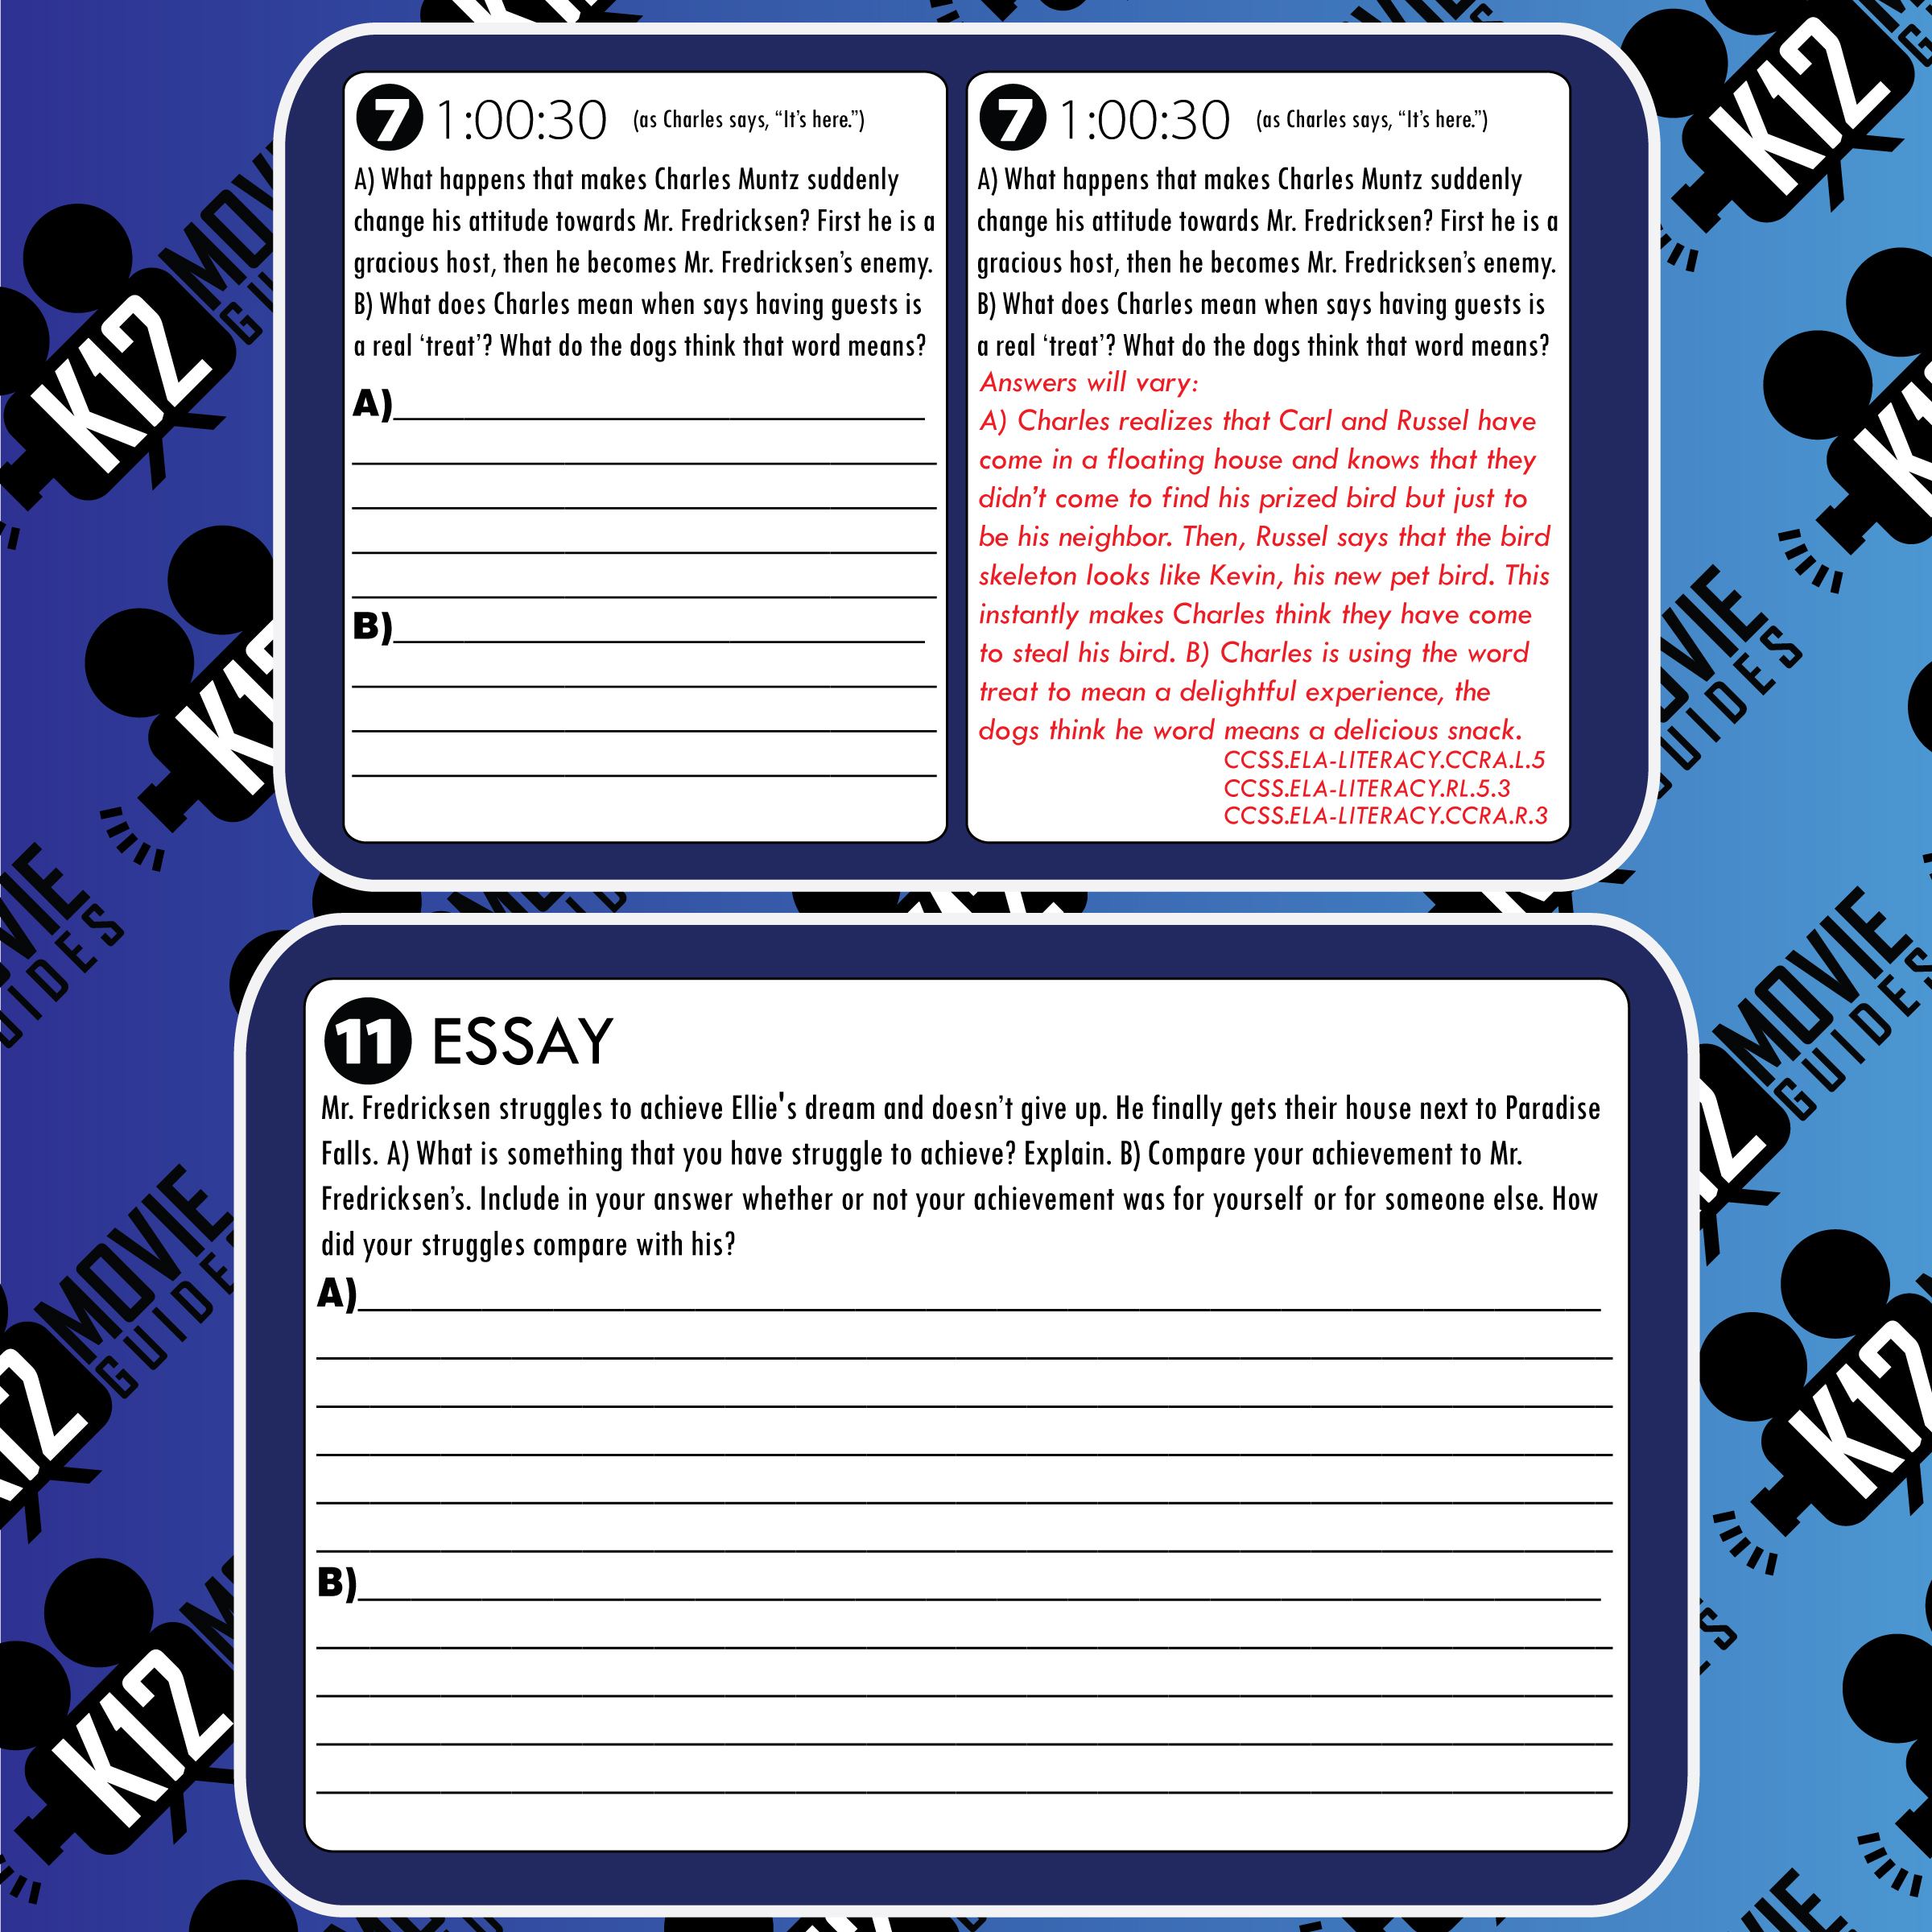 Monsters, Inc. Movie Guide Questions Sample